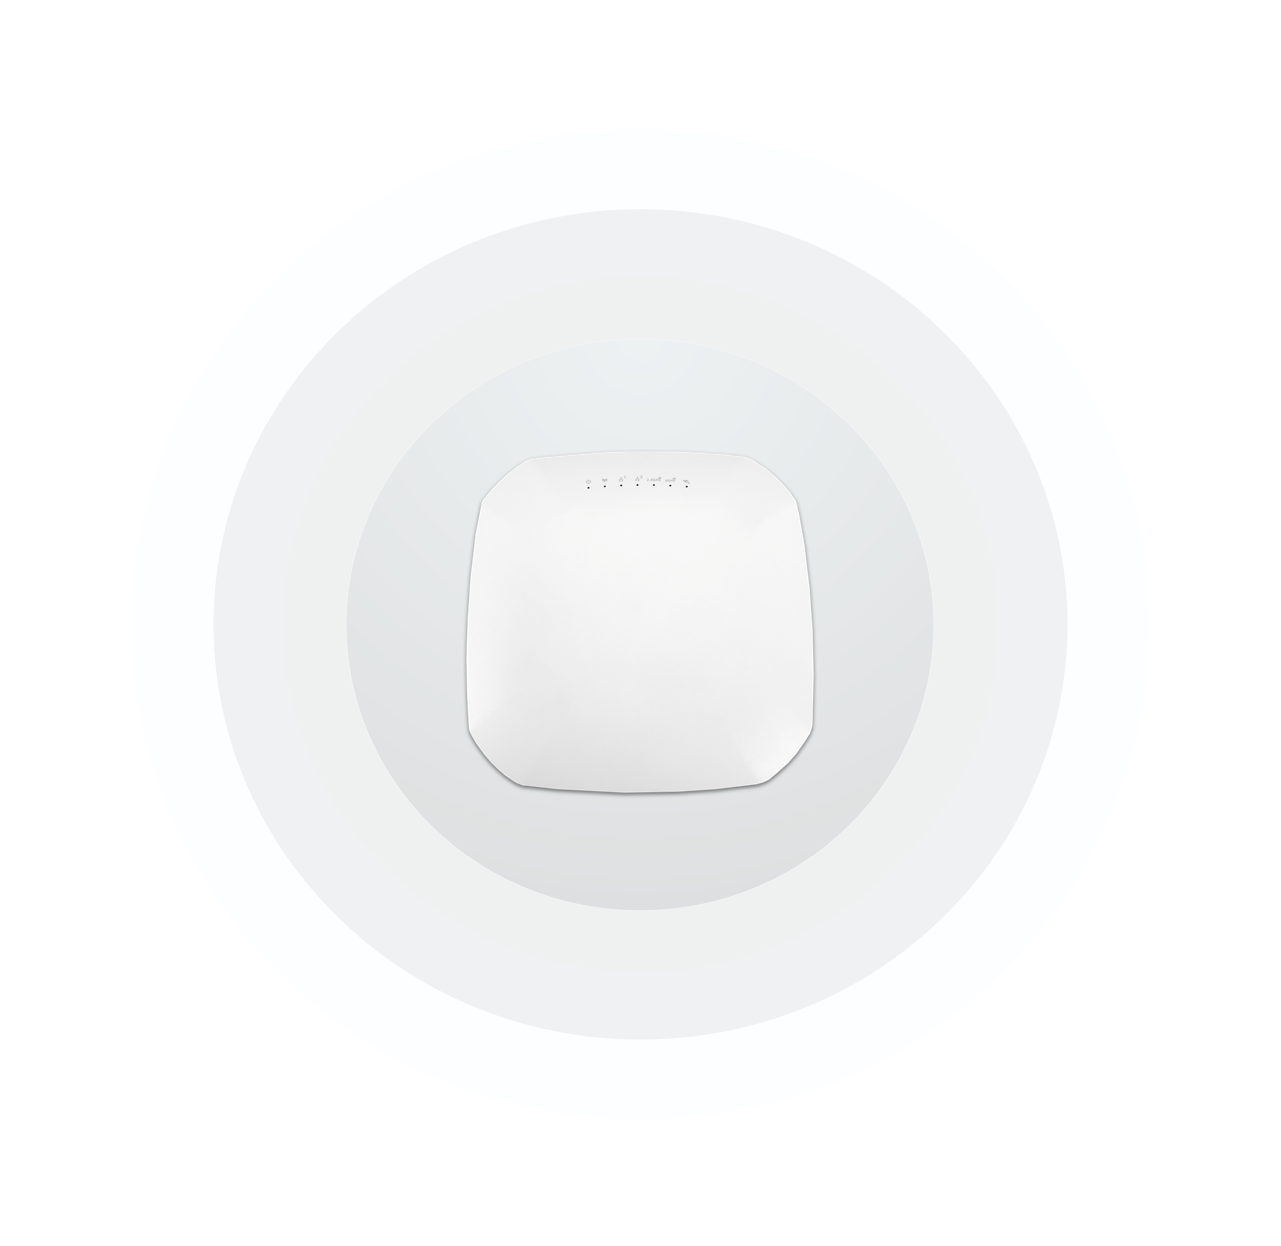 Dual Indoor 4x4 - AP1002Oi High Density Access Point from Everest Networks